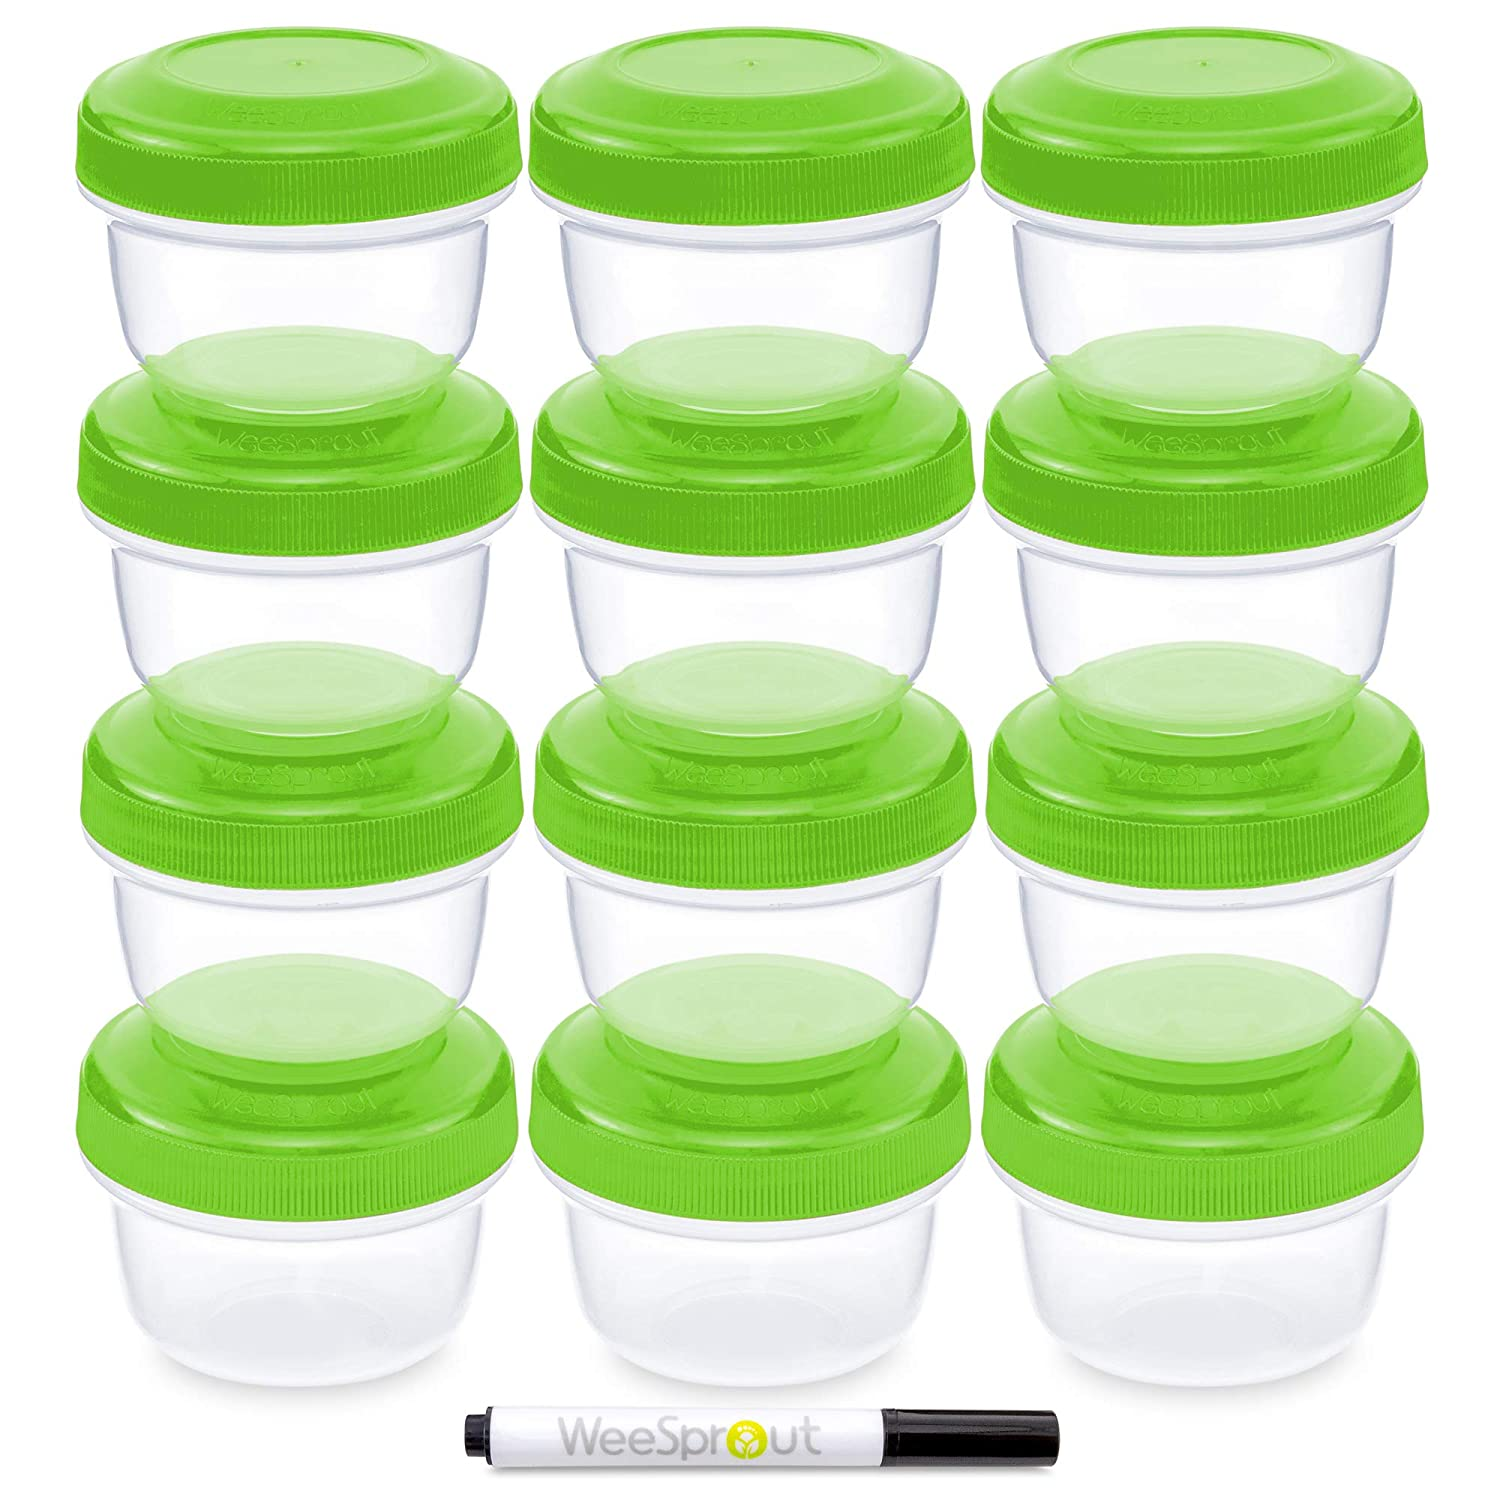 WeeSprout Baby Food Storage Containers | Set of 12 Small Reusable 4oz Jars with Leakproof Lids (Green Color) - BPA Free Plastic - Freezer/Dishwasher Safe - Also Use for Kids Snacks/Lunch Containers